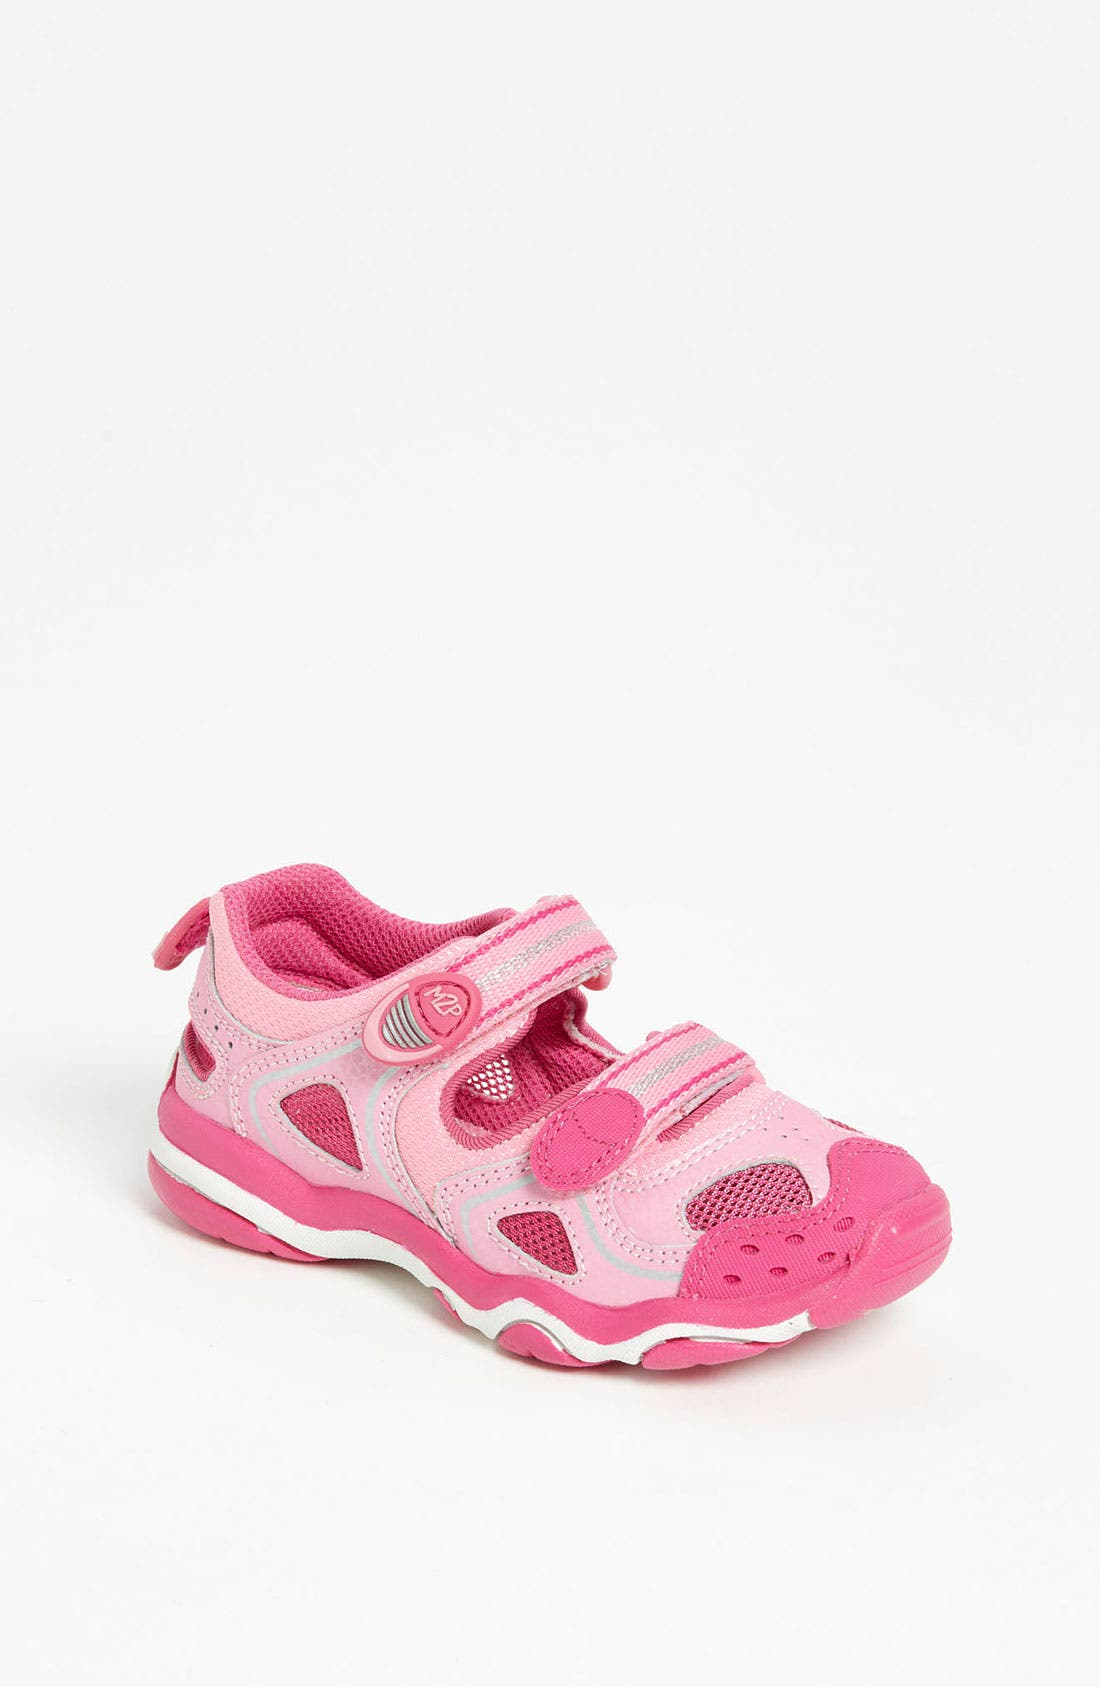 Alternate Image 1 Selected - Stride Rite 'Liddie' Sandal (Toddler)